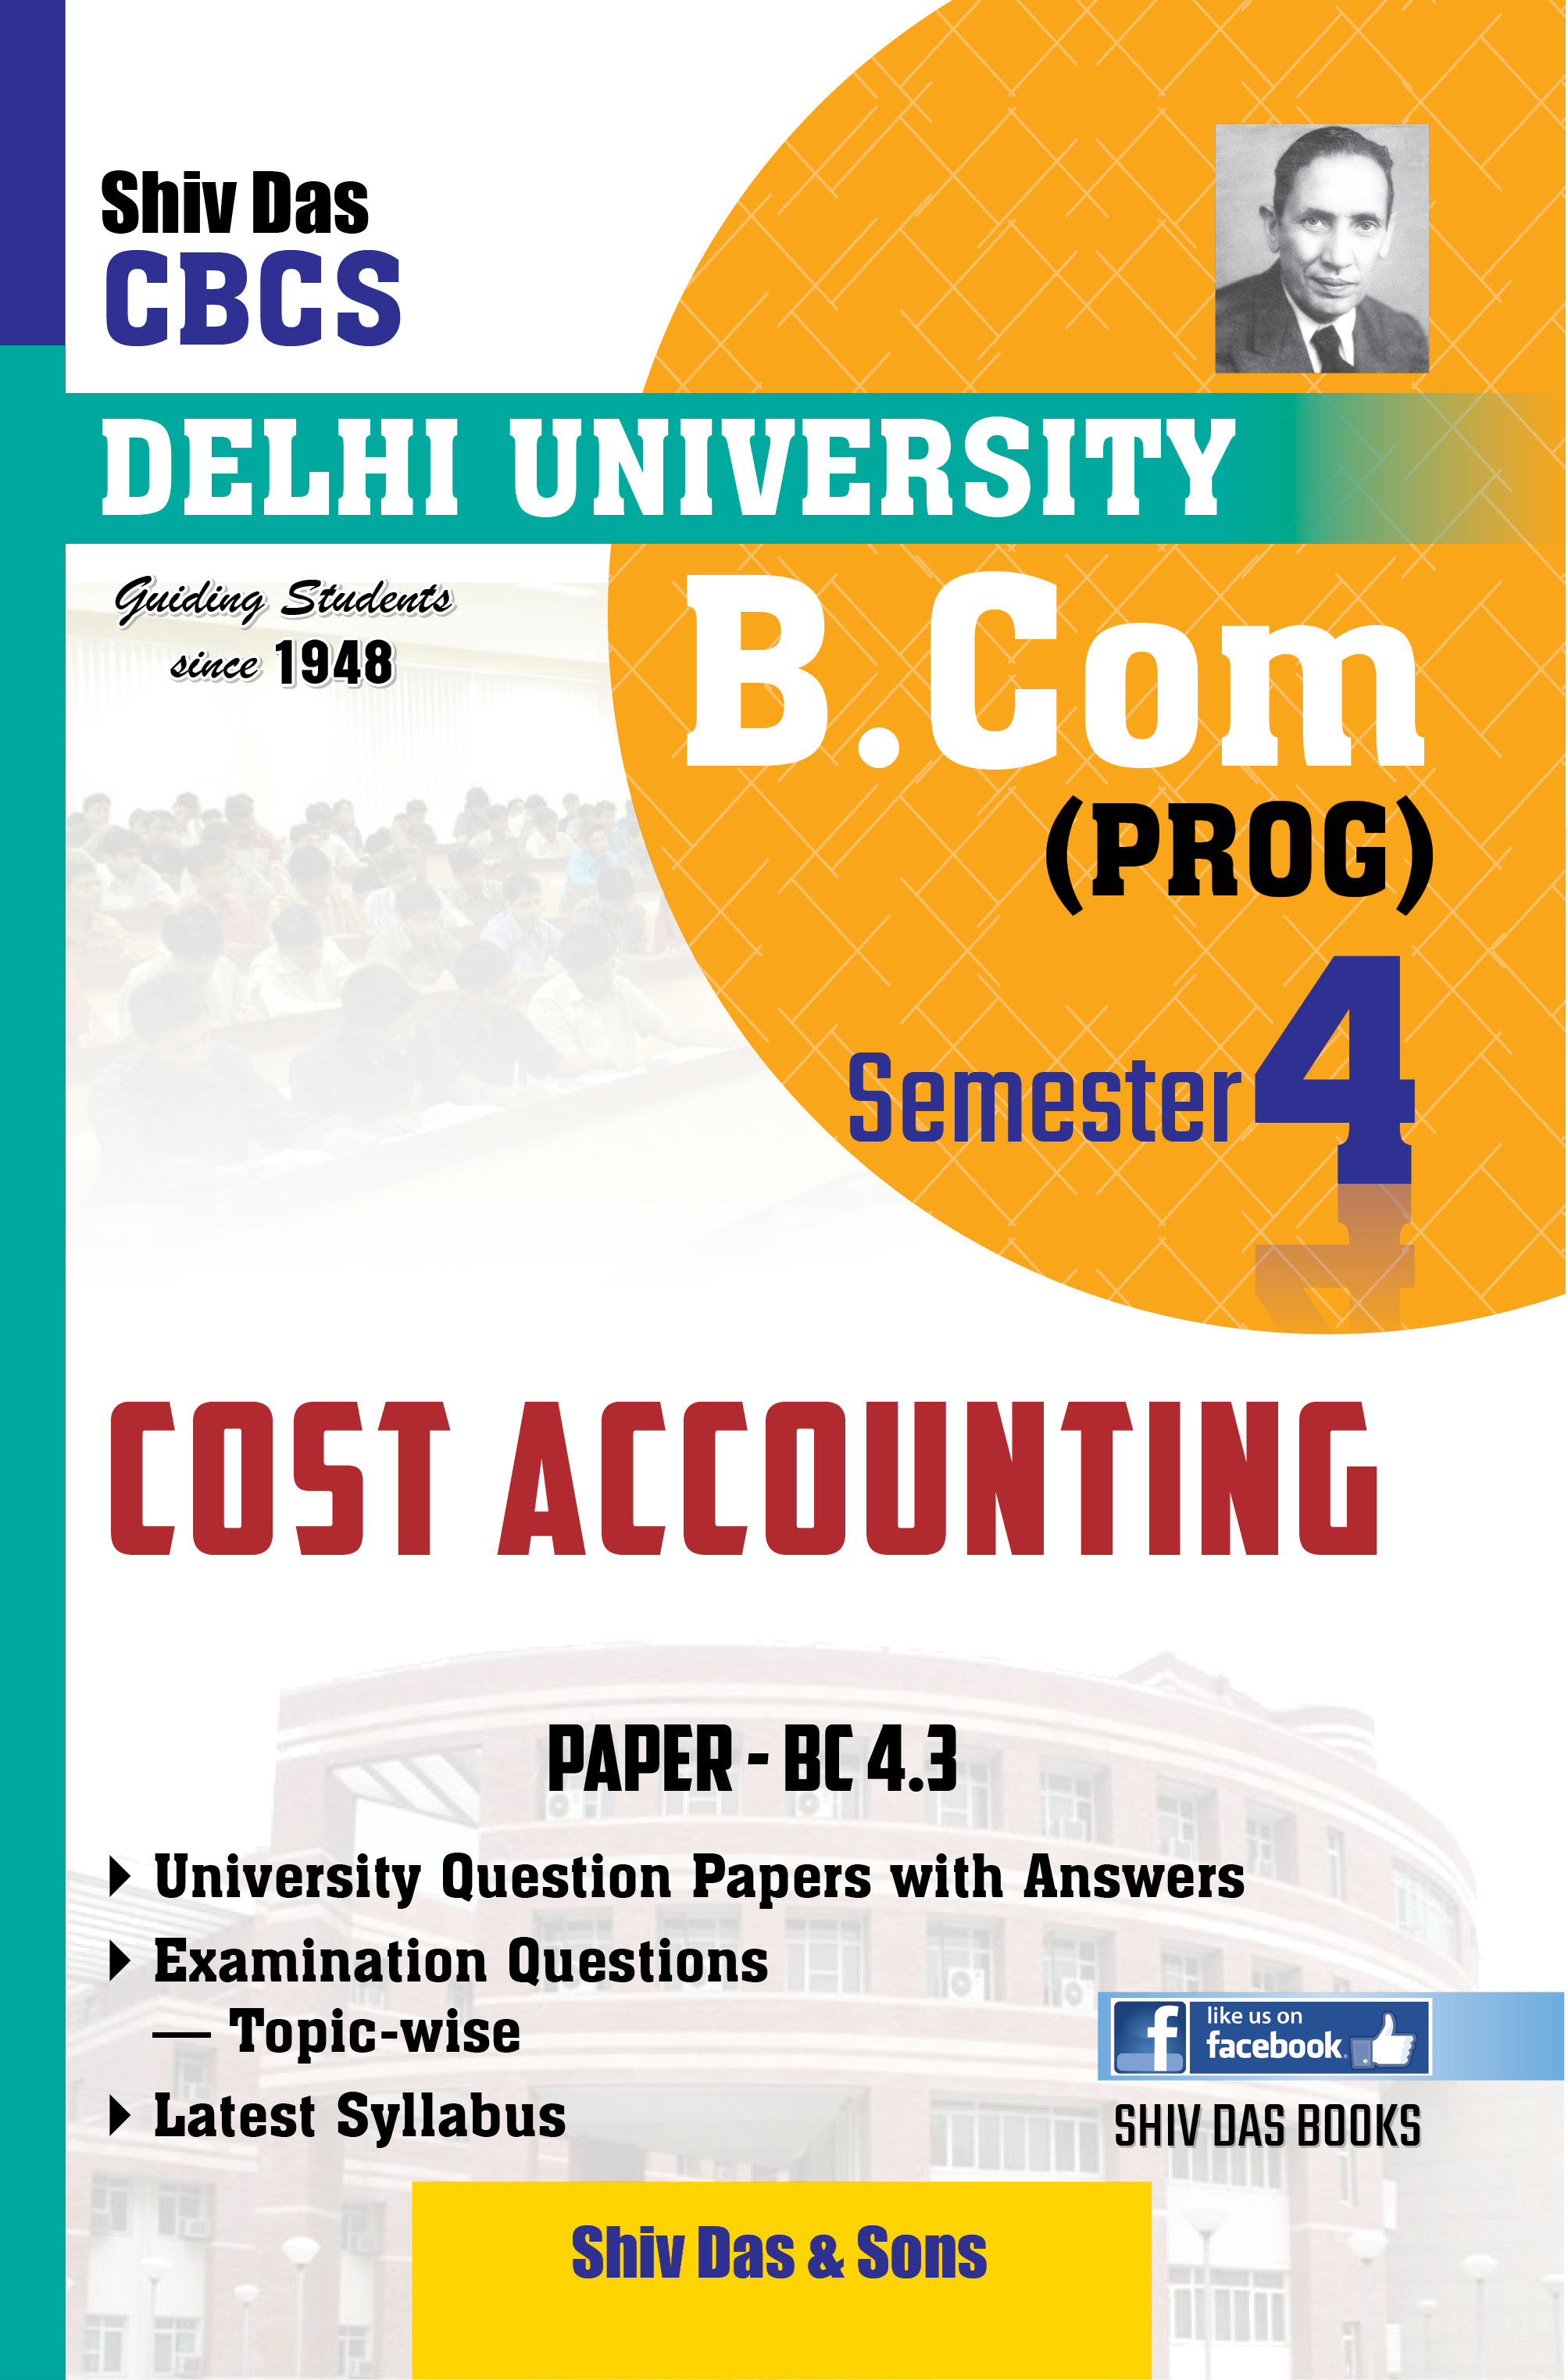 Cost Accounting for B.Com Prog Semester-4